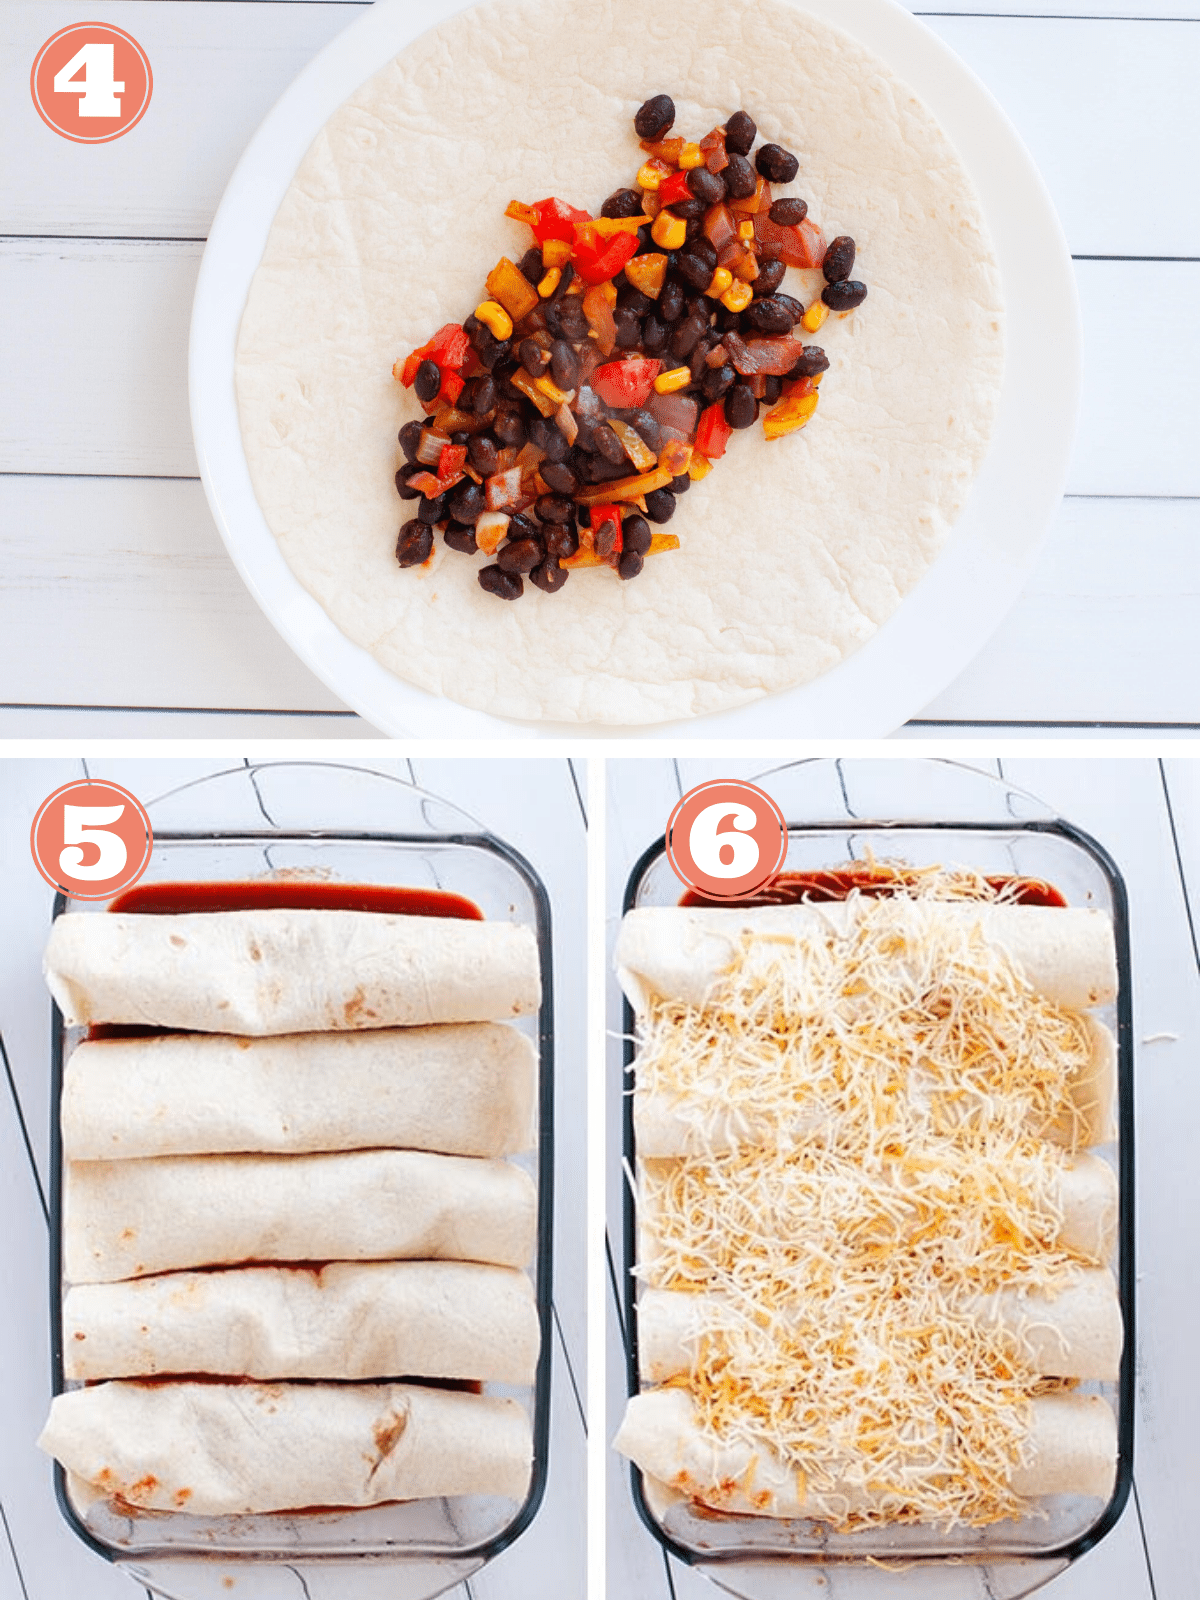 Graphic showing steps 4-6 to make enchiladas